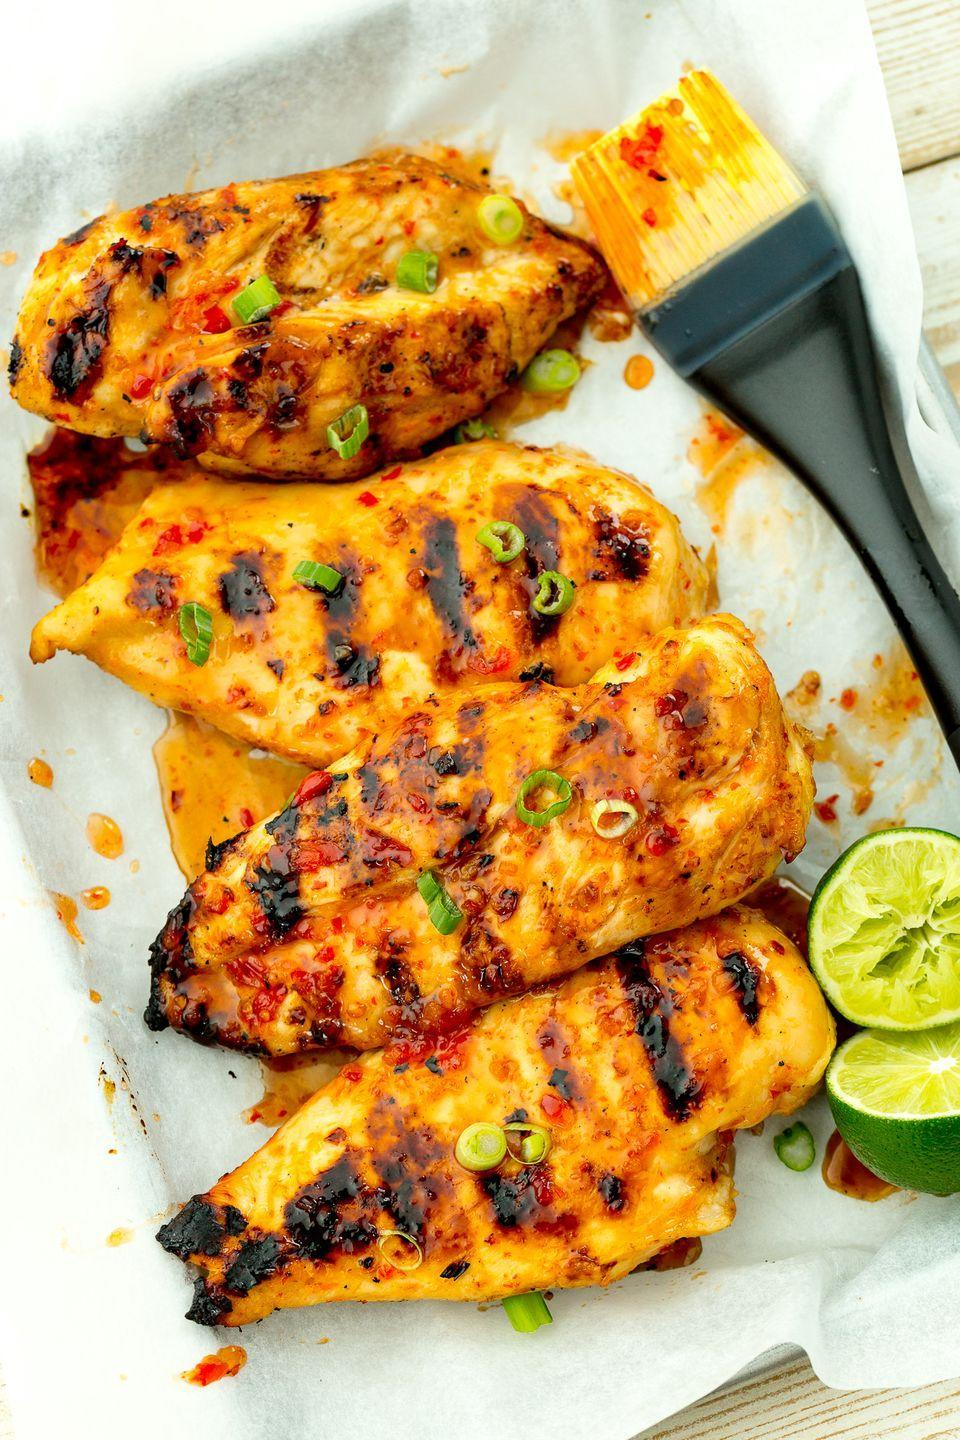 """<p>Grilled chicken gets a punch of flavor from sticky sweet-chili sauce.</p><p>Get the recipe from <a href=""""https://www.delish.com/cooking/recipe-ideas/recipes/a47356/sweet-chili-lime-grilled-chicken-recipe/"""" rel=""""nofollow noopener"""" target=""""_blank"""" data-ylk=""""slk:Delish"""" class=""""link rapid-noclick-resp"""">Delish</a>.</p><p><a class=""""link rapid-noclick-resp"""" href=""""https://www.amazon.com/Pyrex-Prepware-3-Piece-Glass-Mixing/dp/B00LGLHUA0/?tag=syn-yahoo-20&ascsubtag=%5Bartid%7C1782.g.2180%5Bsrc%7Cyahoo-us"""" rel=""""nofollow noopener"""" target=""""_blank"""" data-ylk=""""slk:BUY NOW"""">BUY NOW</a> <strong><em>Pyrex Bowls, $10, amazon.com.</em></strong></p>"""